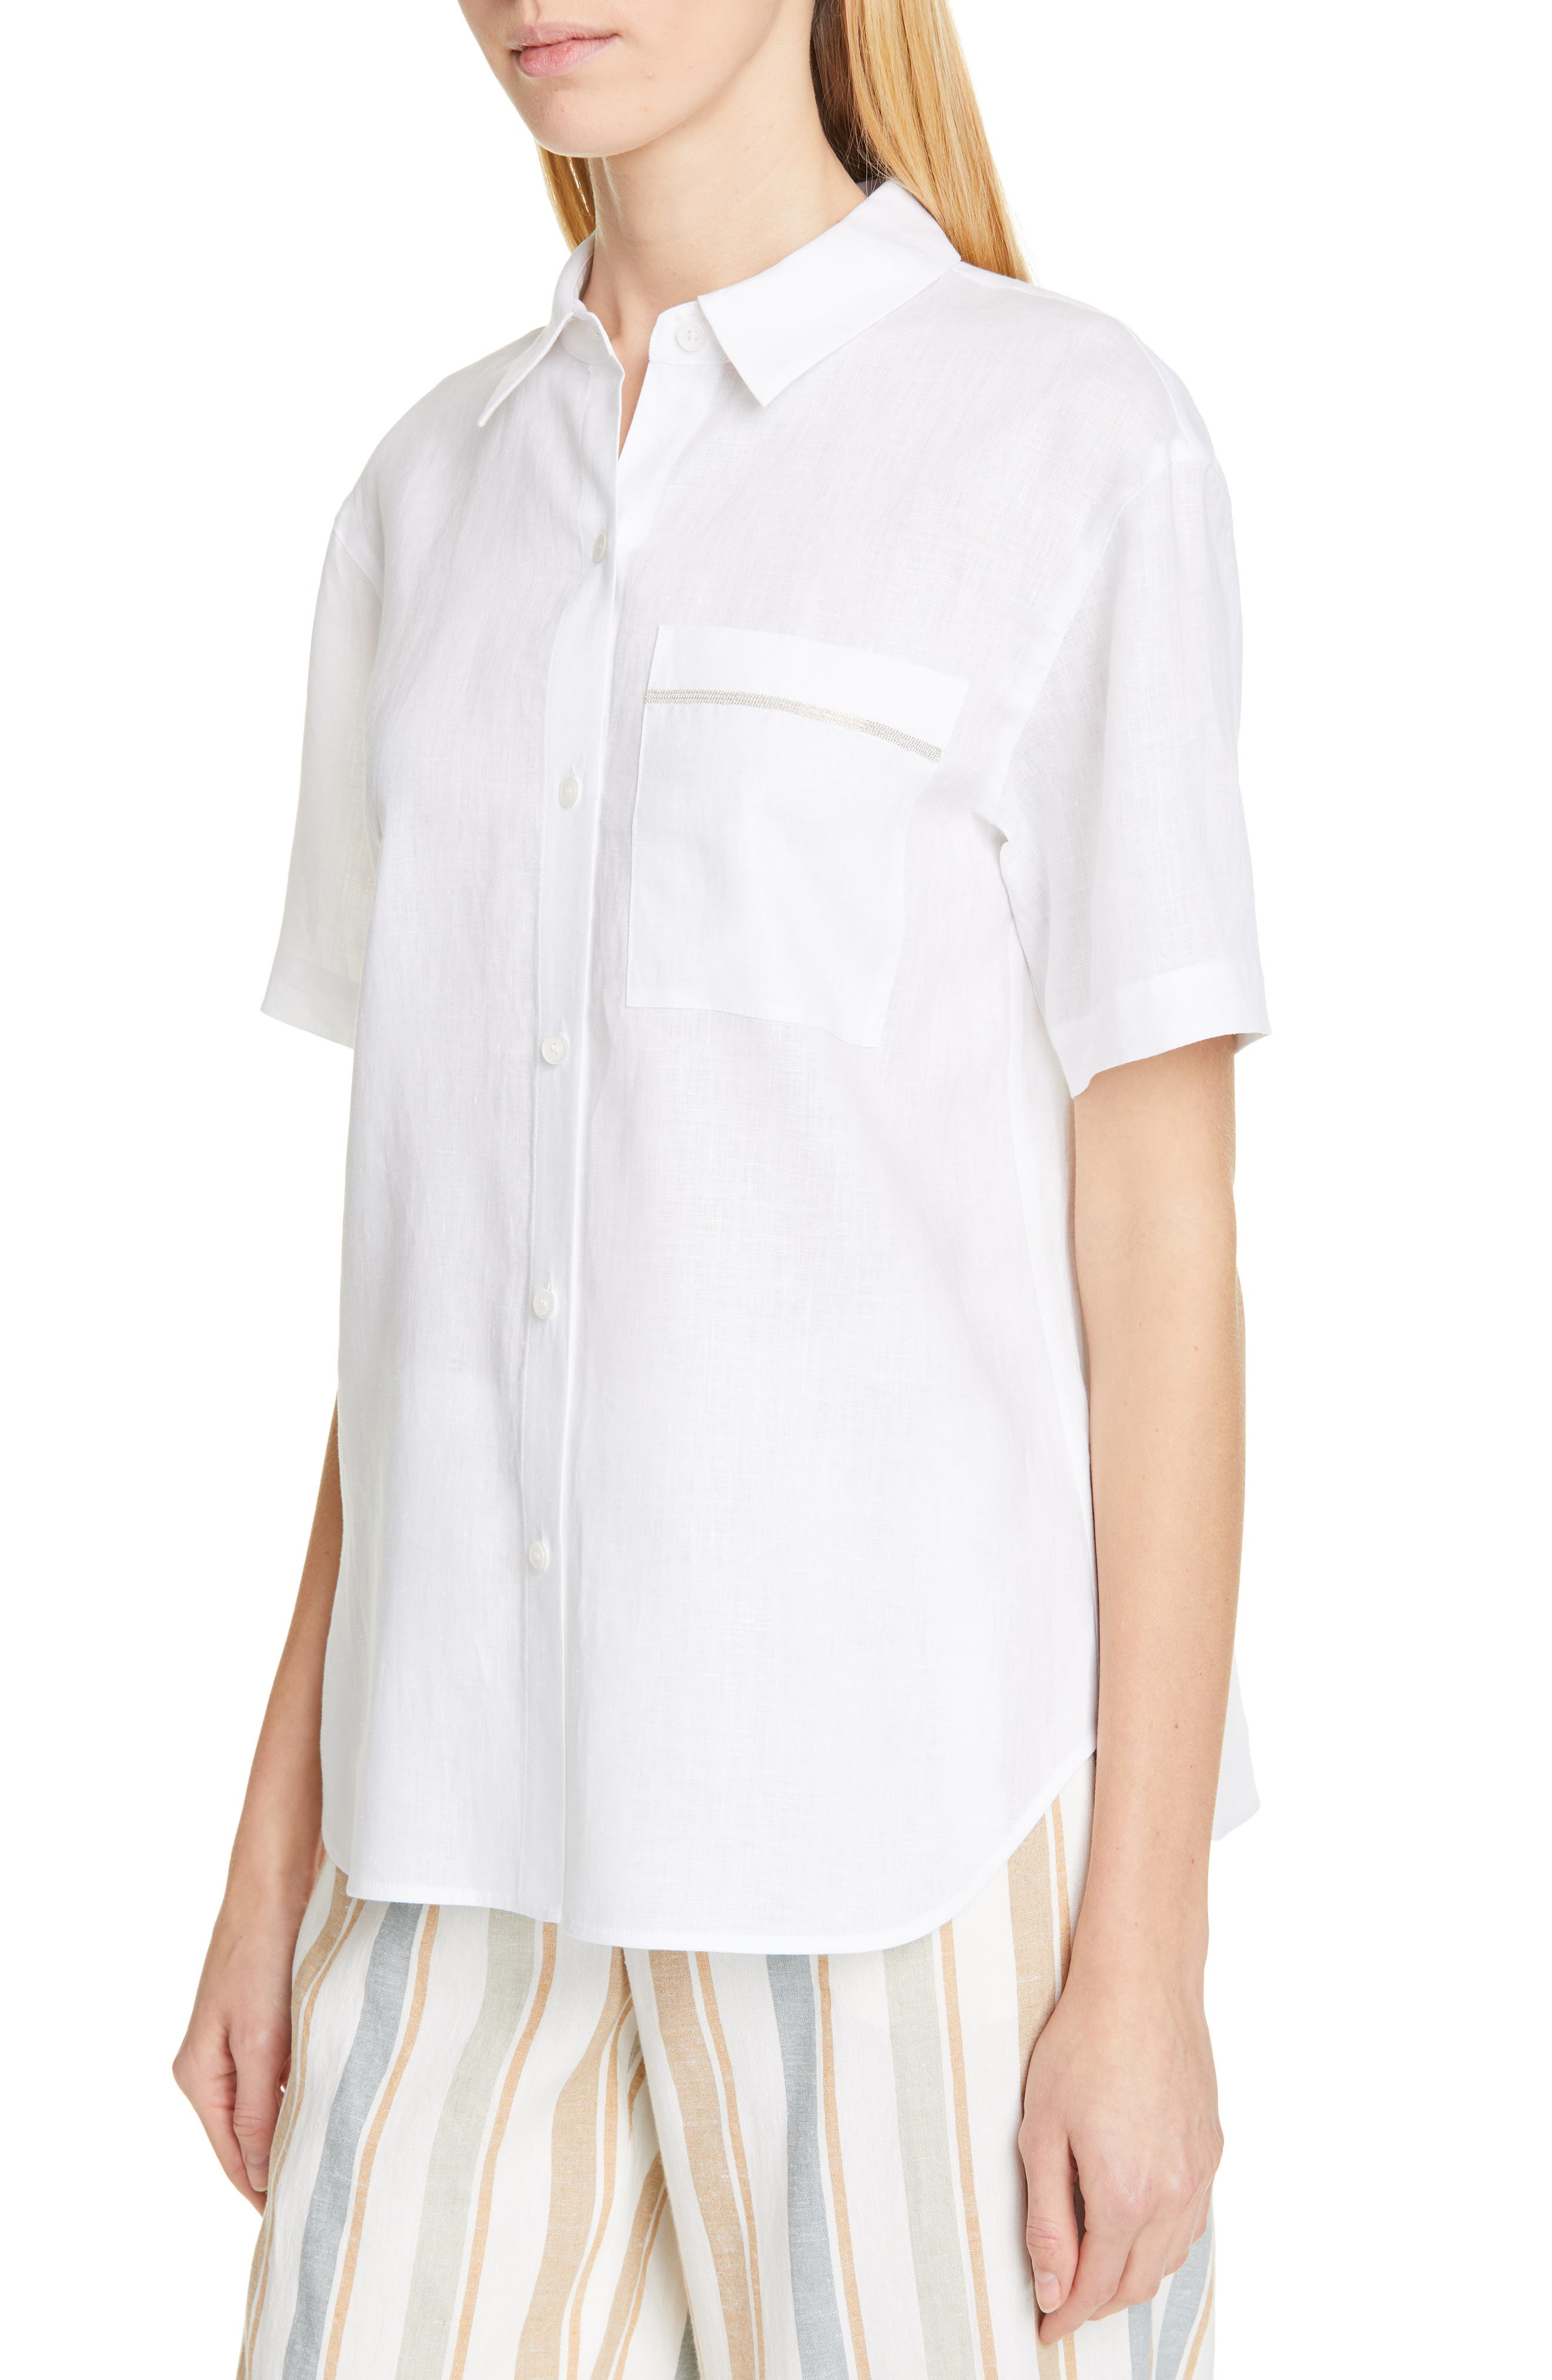 LAFAYETTE 148 NEW YORK, Justice Linen Shirt, Alternate thumbnail 4, color, WHITE